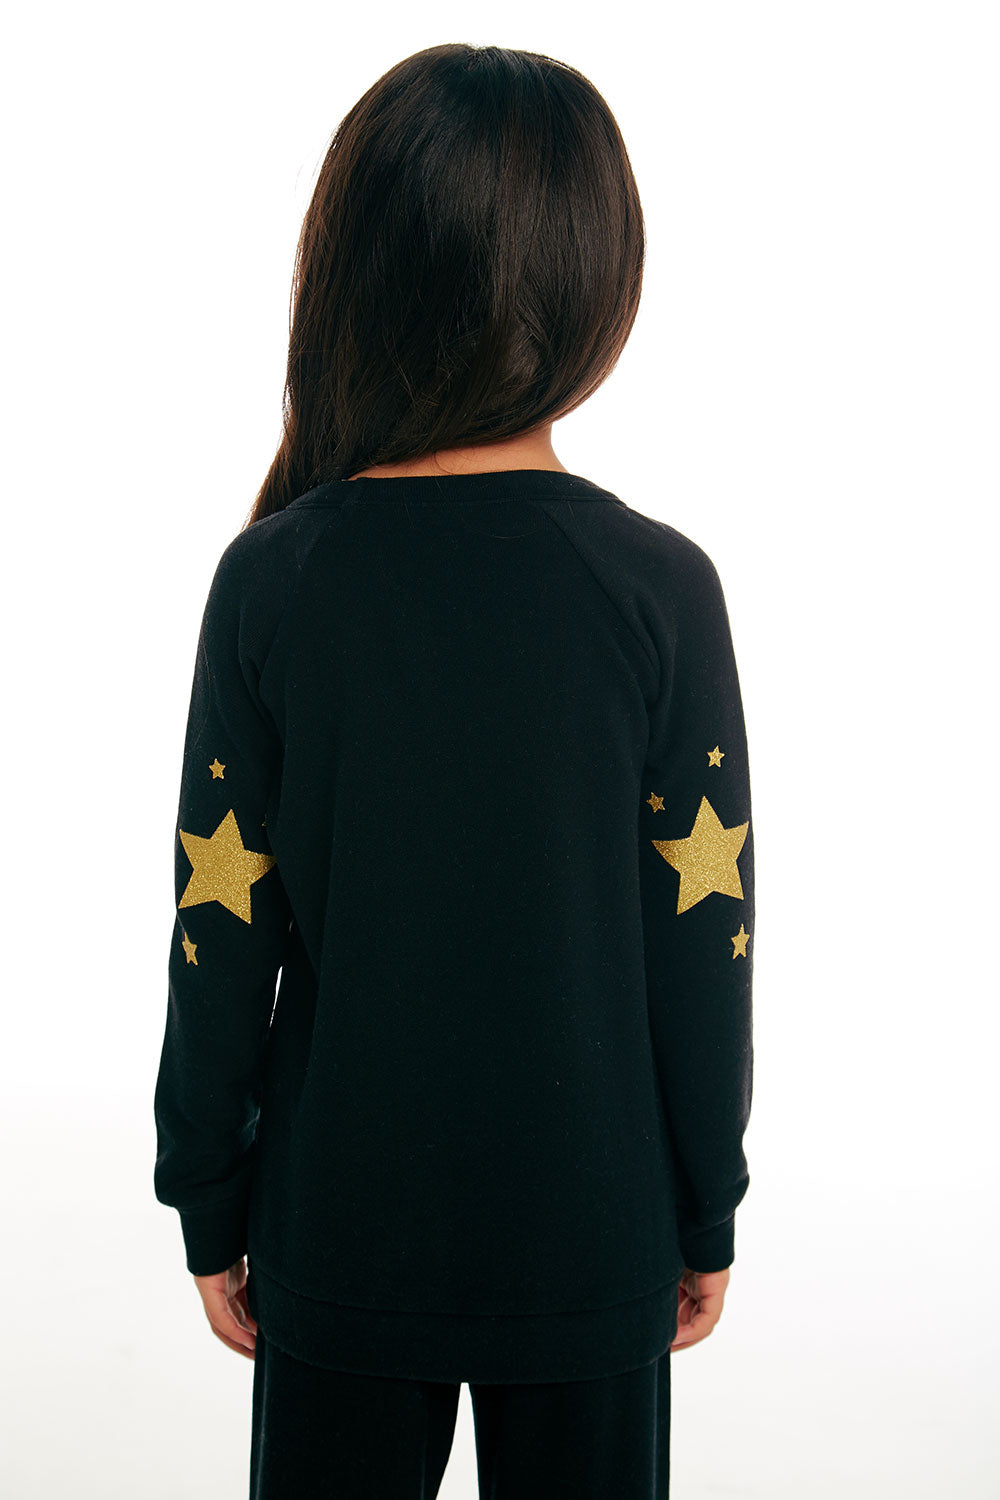 Golden Unicorn GIRLS chaserbrand4.myshopify.com